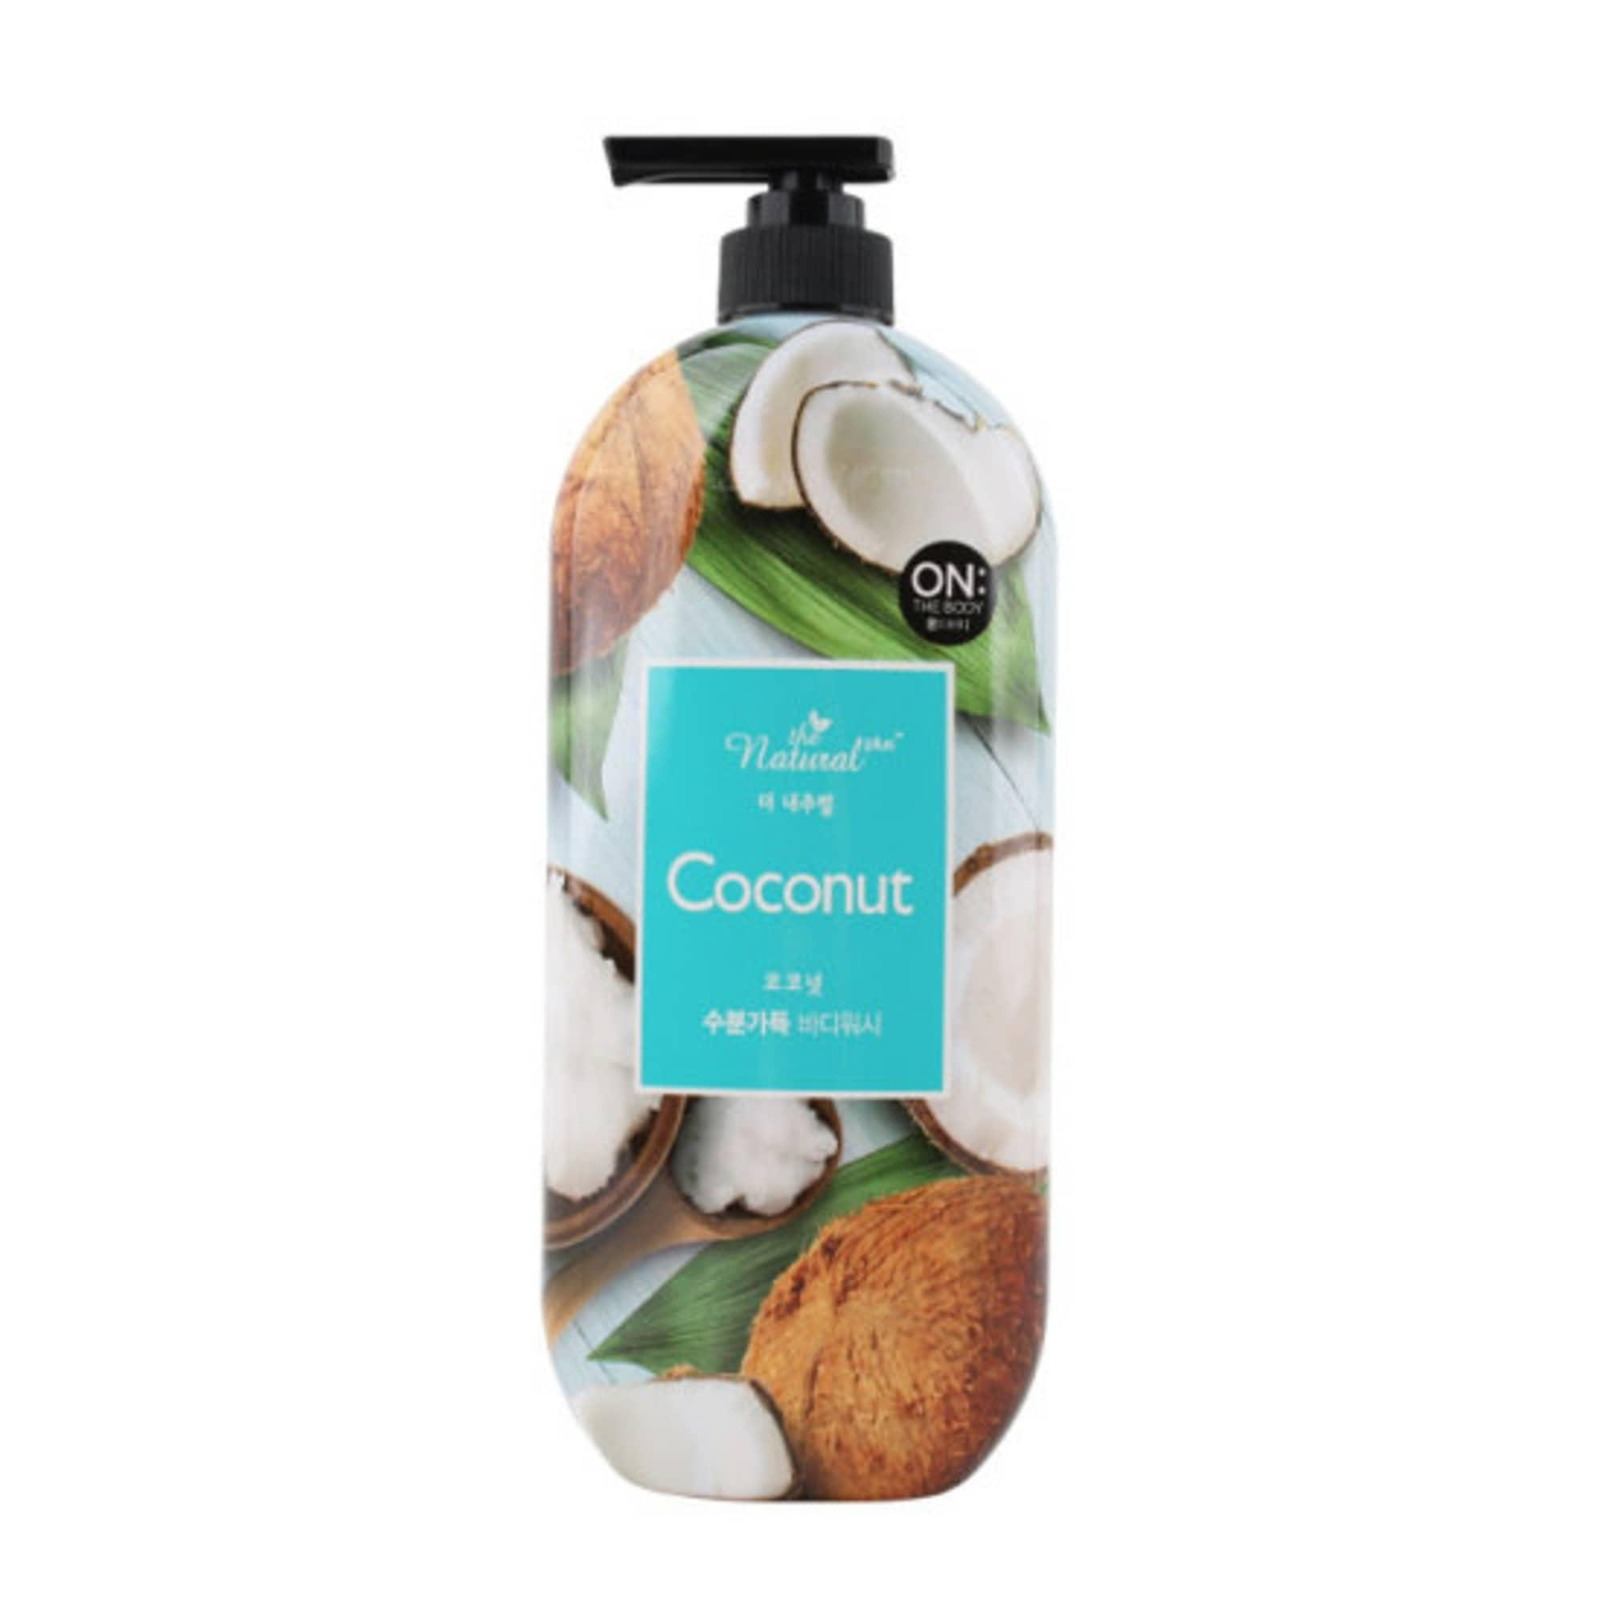 On The Body Coconut Superfood Body Wash